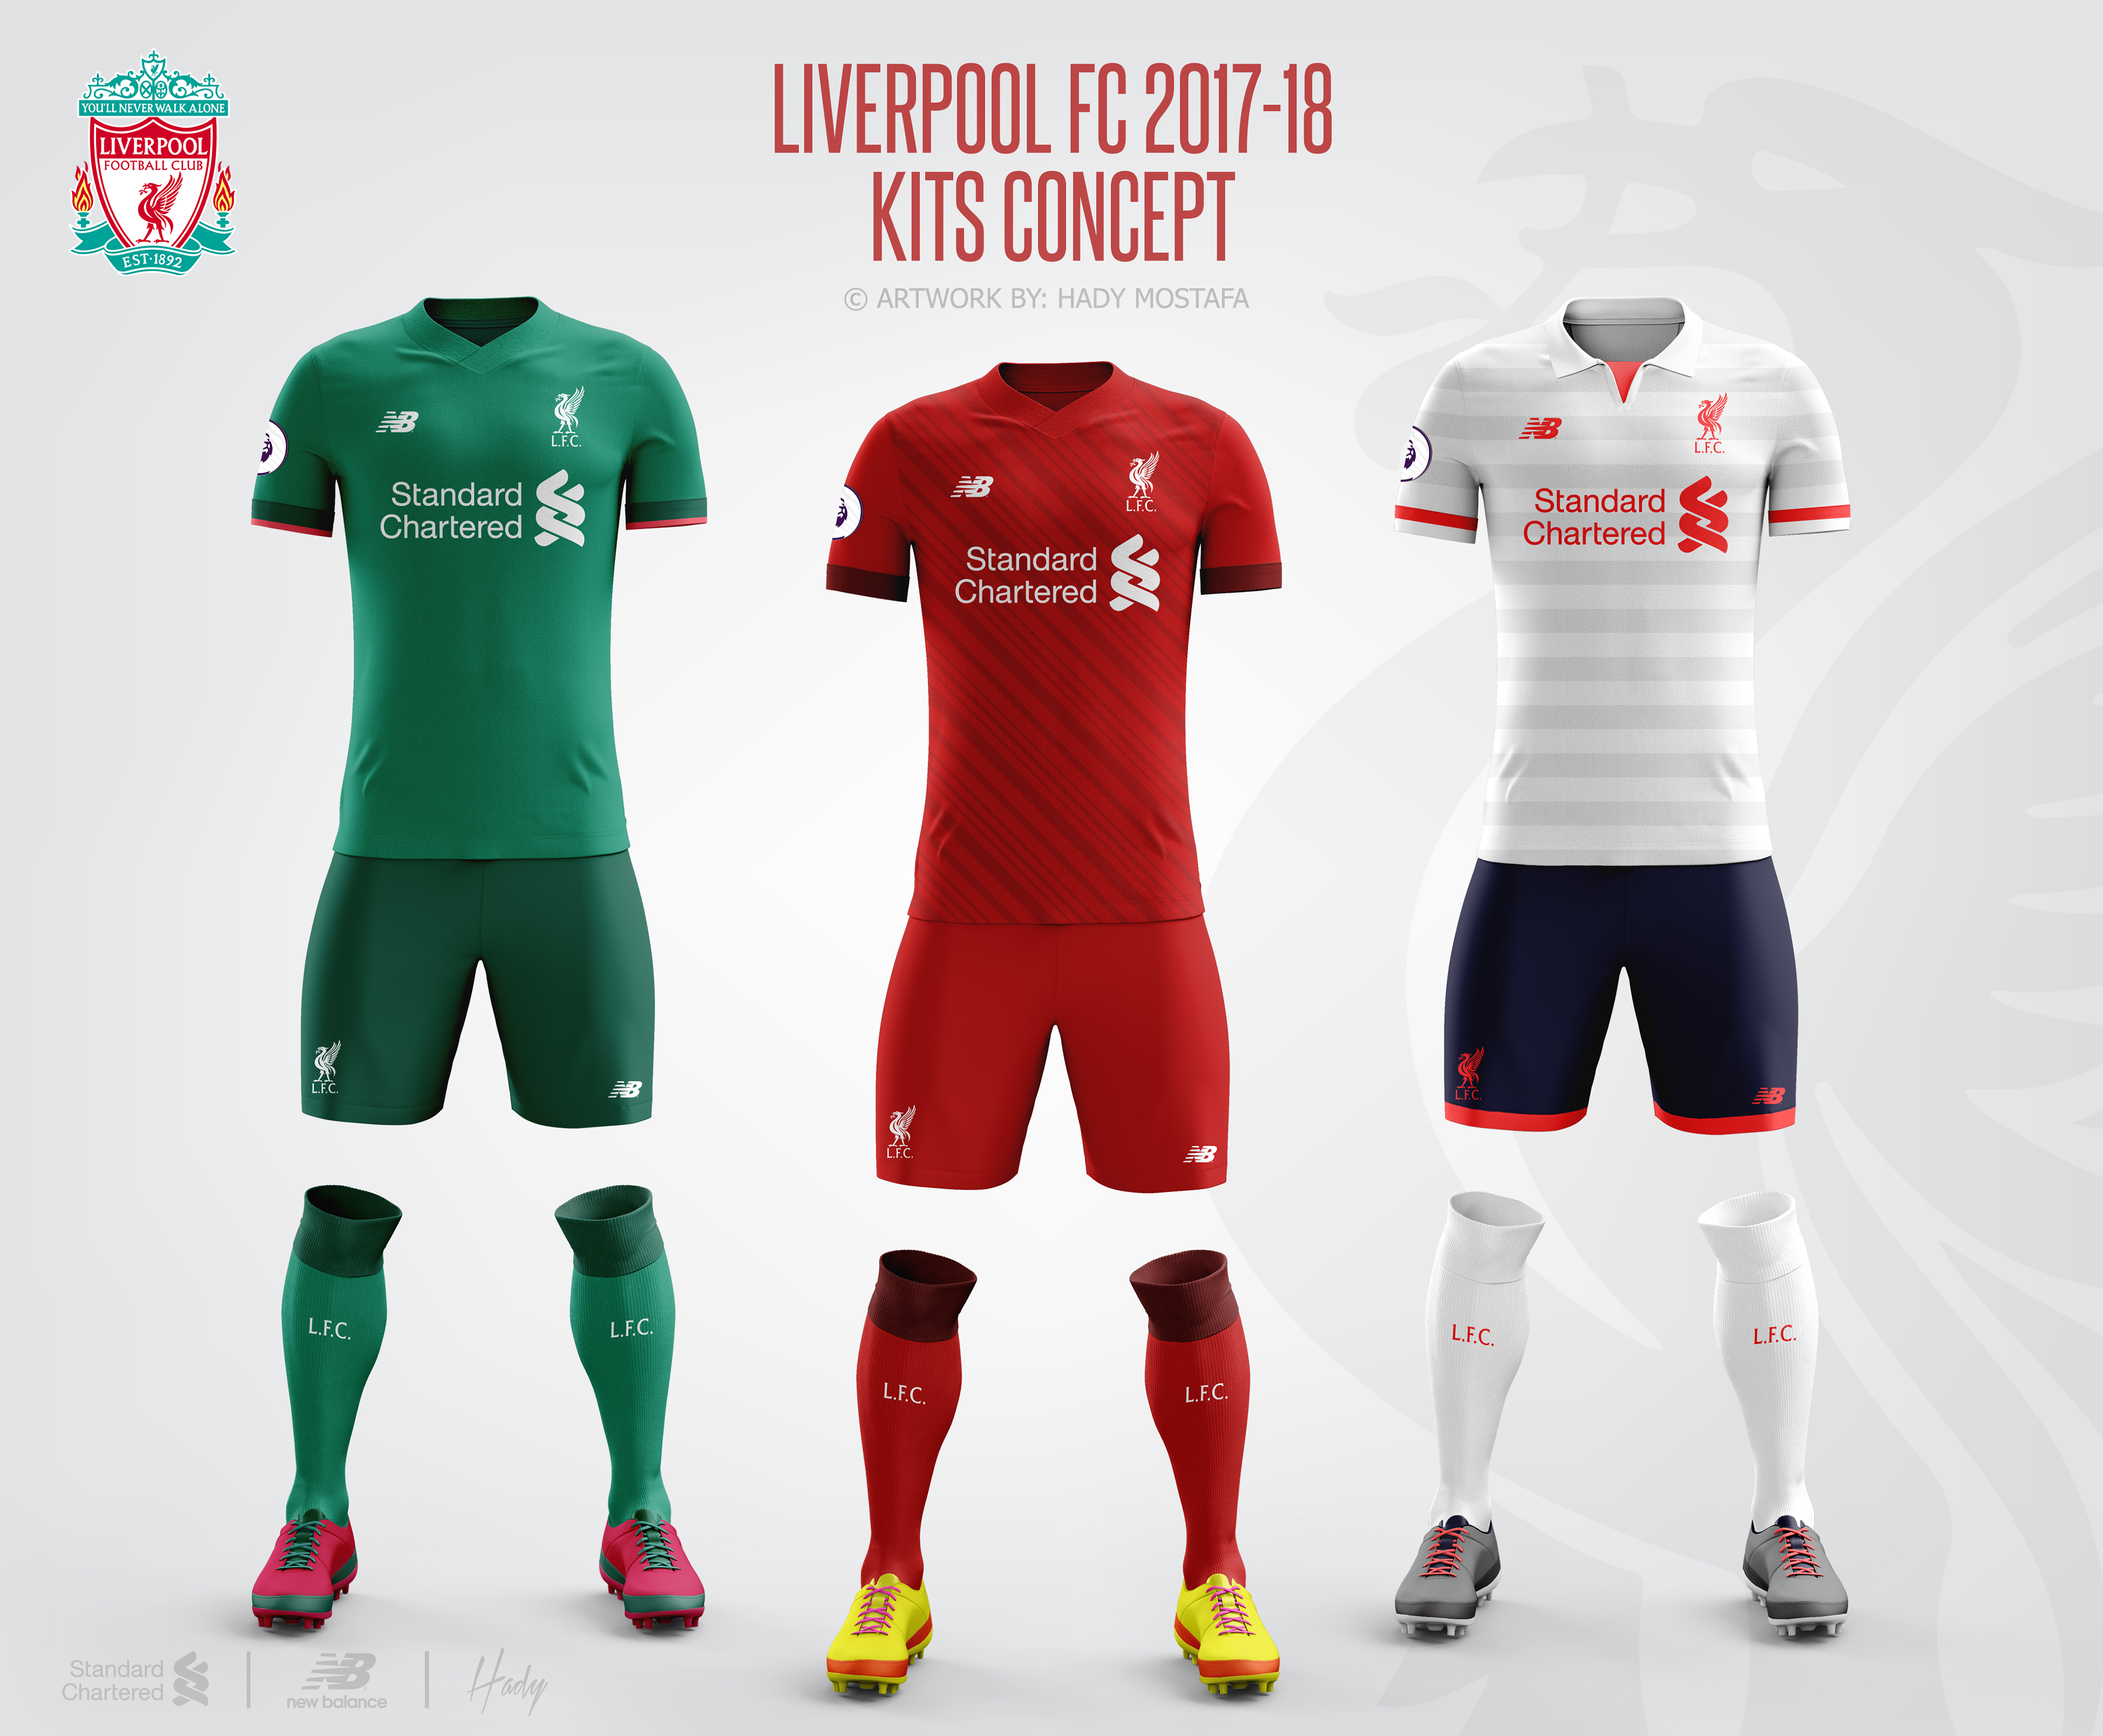 Design your own t shirt liverpool - Liverpool Football Club 2017 18 Kits Concept